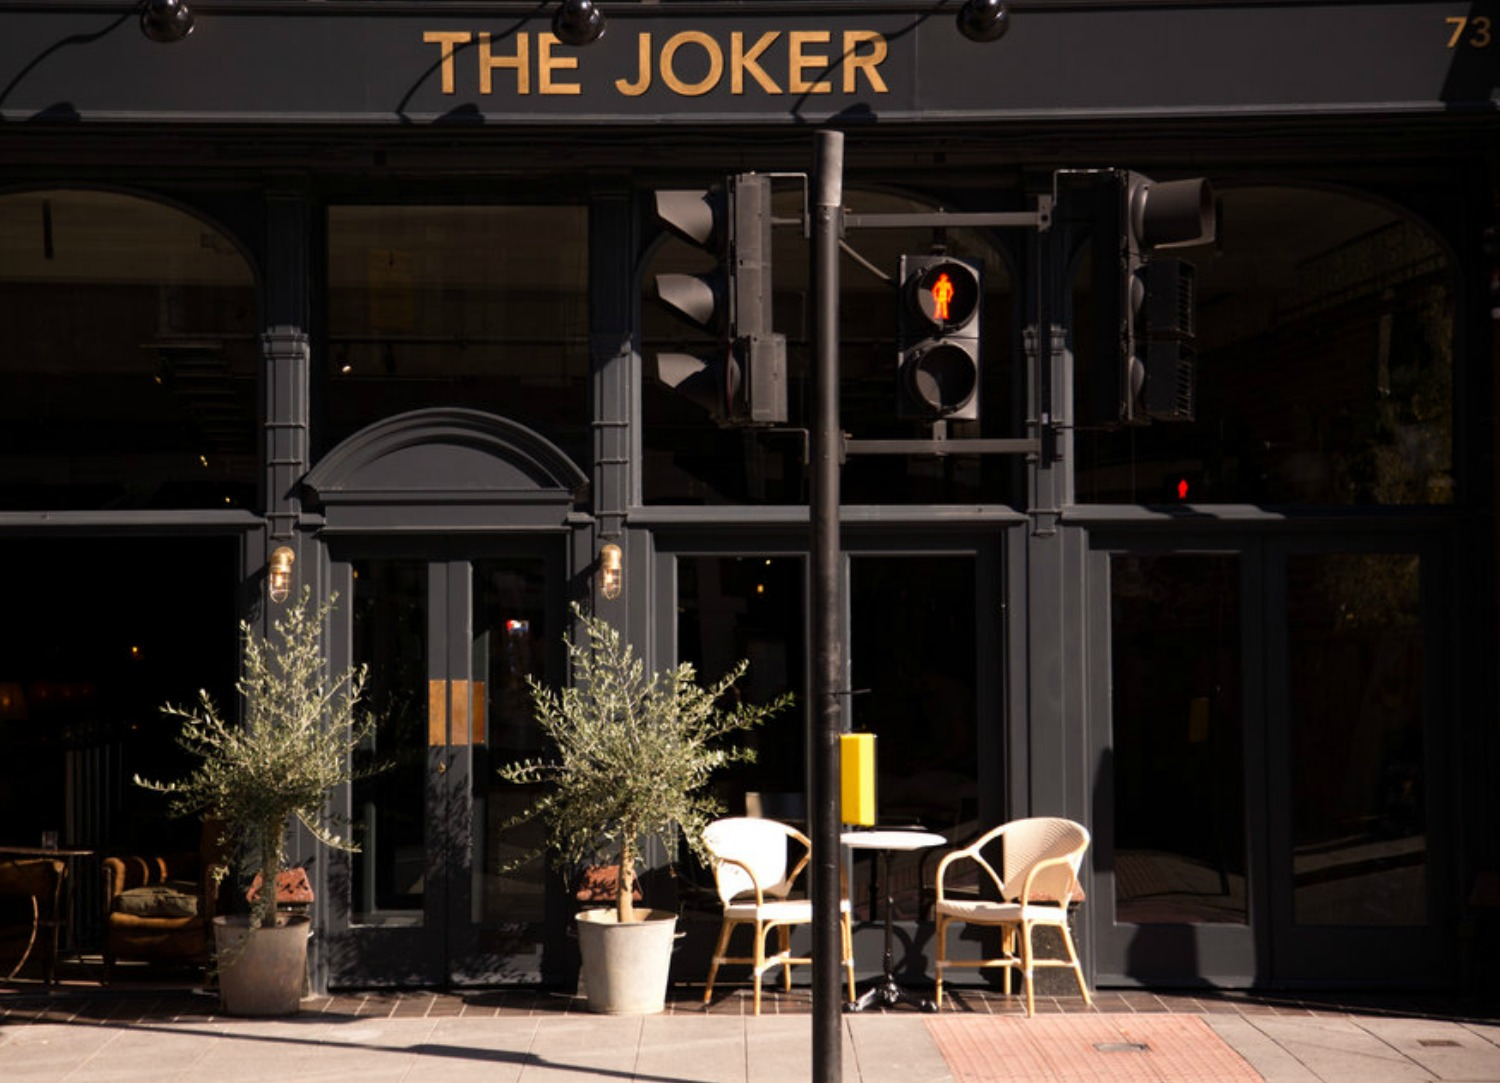 The outside of a neighbourhood bar called The Joker in Croydon